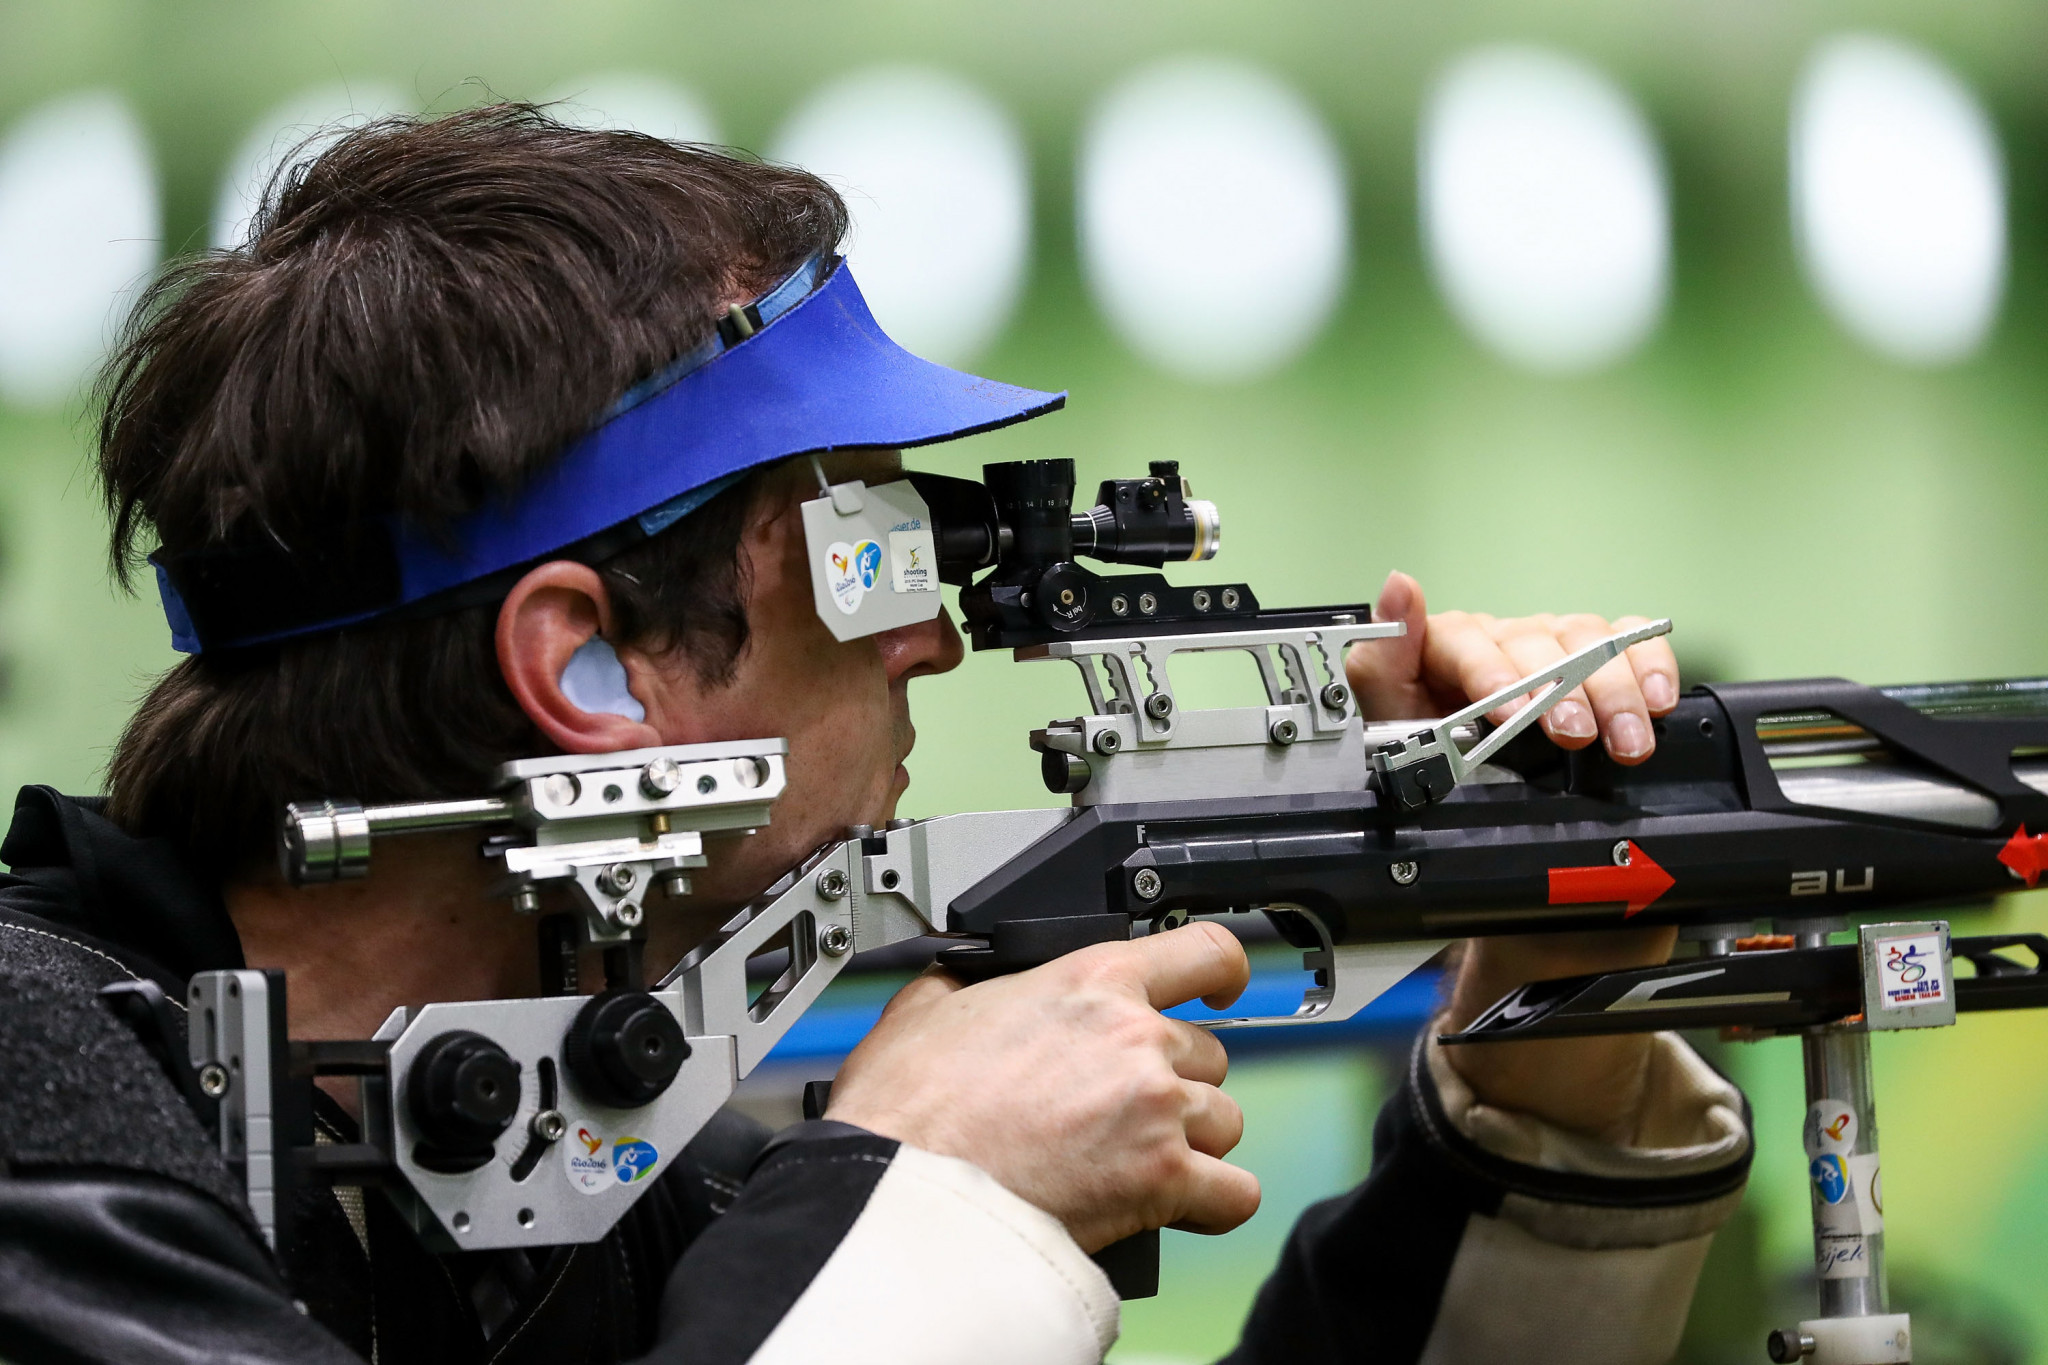 Preparations for the 2020 Olympic Games in Tokyo and the 2024 Olympic Games in Paris were discussed between ISSF President Vladimir Lisin and the IOC's Kit McConnell and David Luckes ©Getty Images